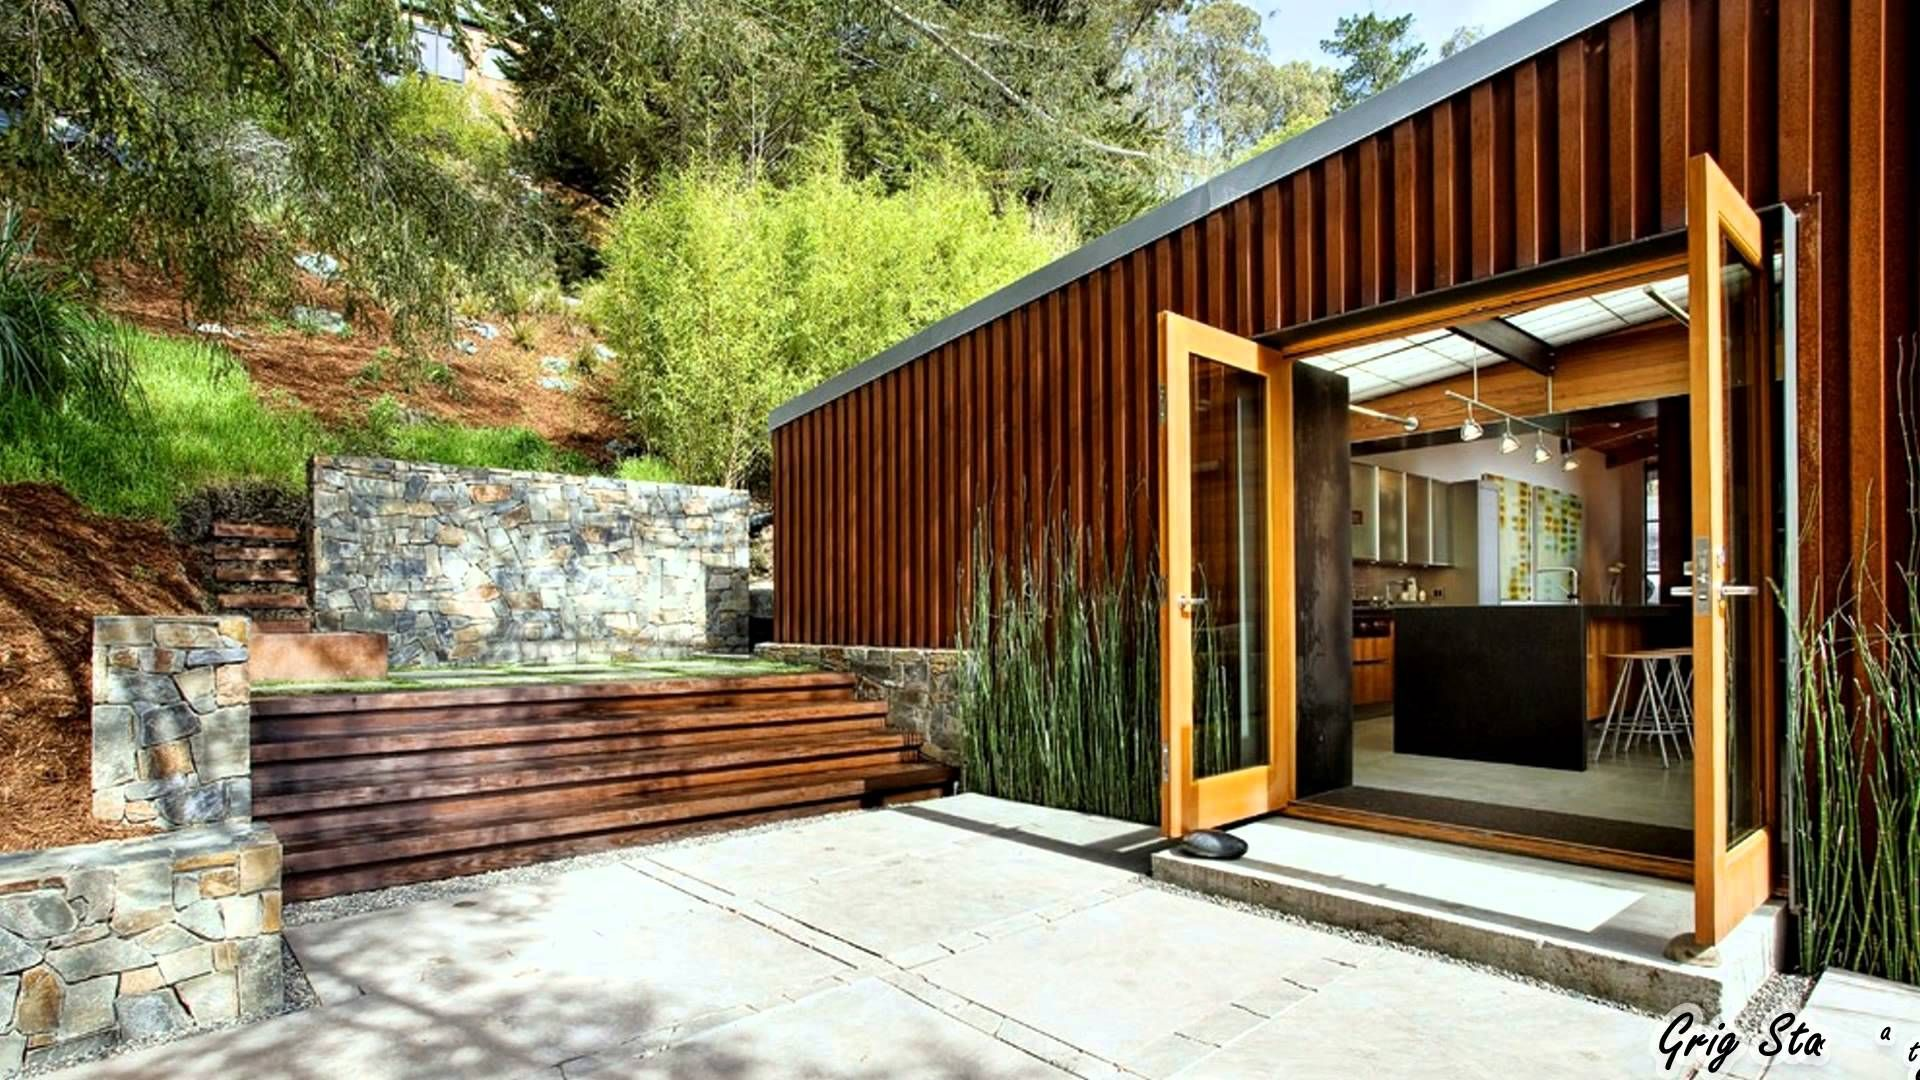 Container Building cool shipping container homes, awesome homes made from shipping